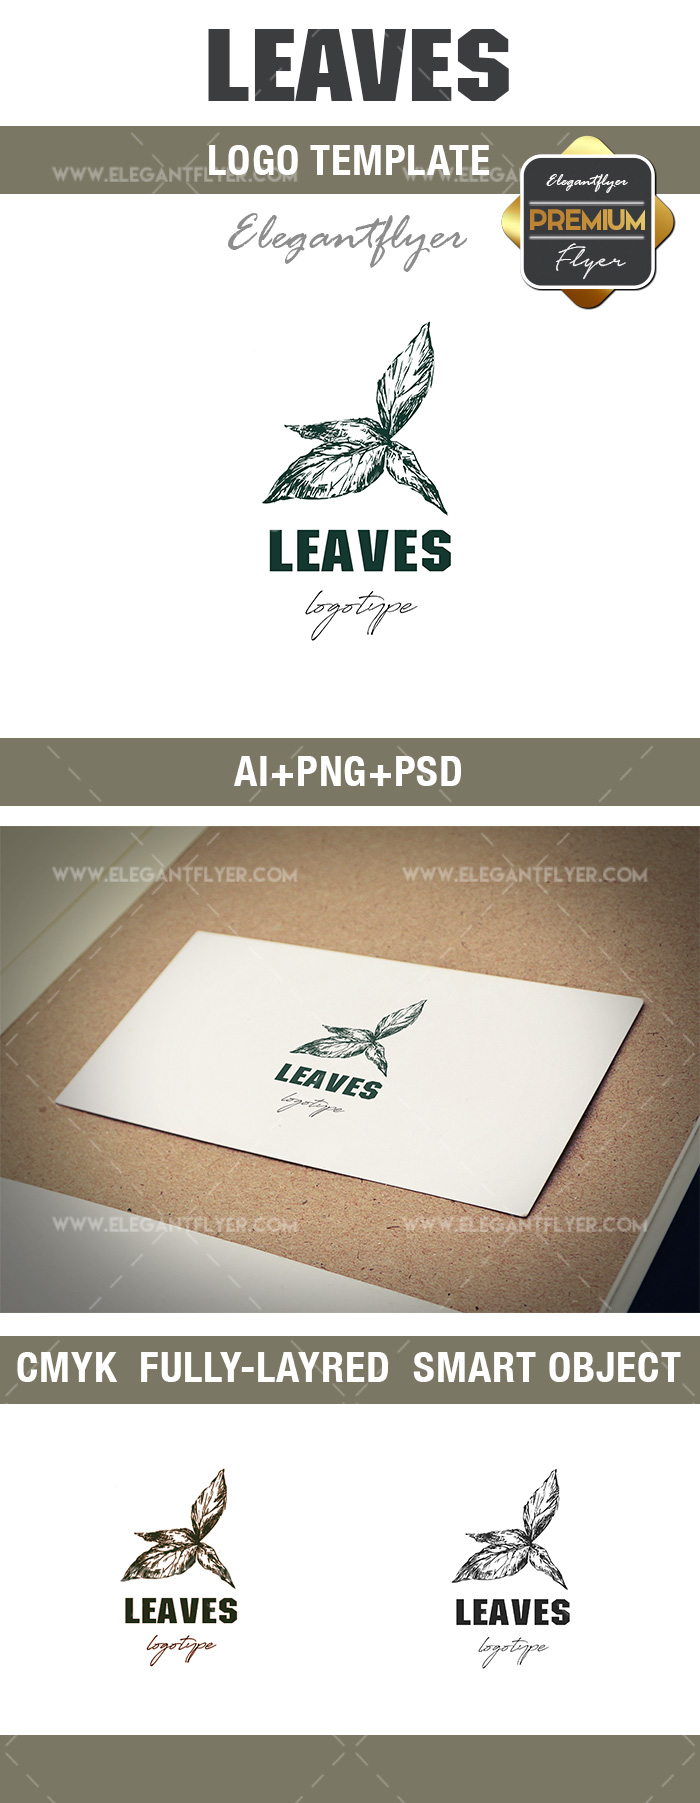 Leaves – Premium Logo Template